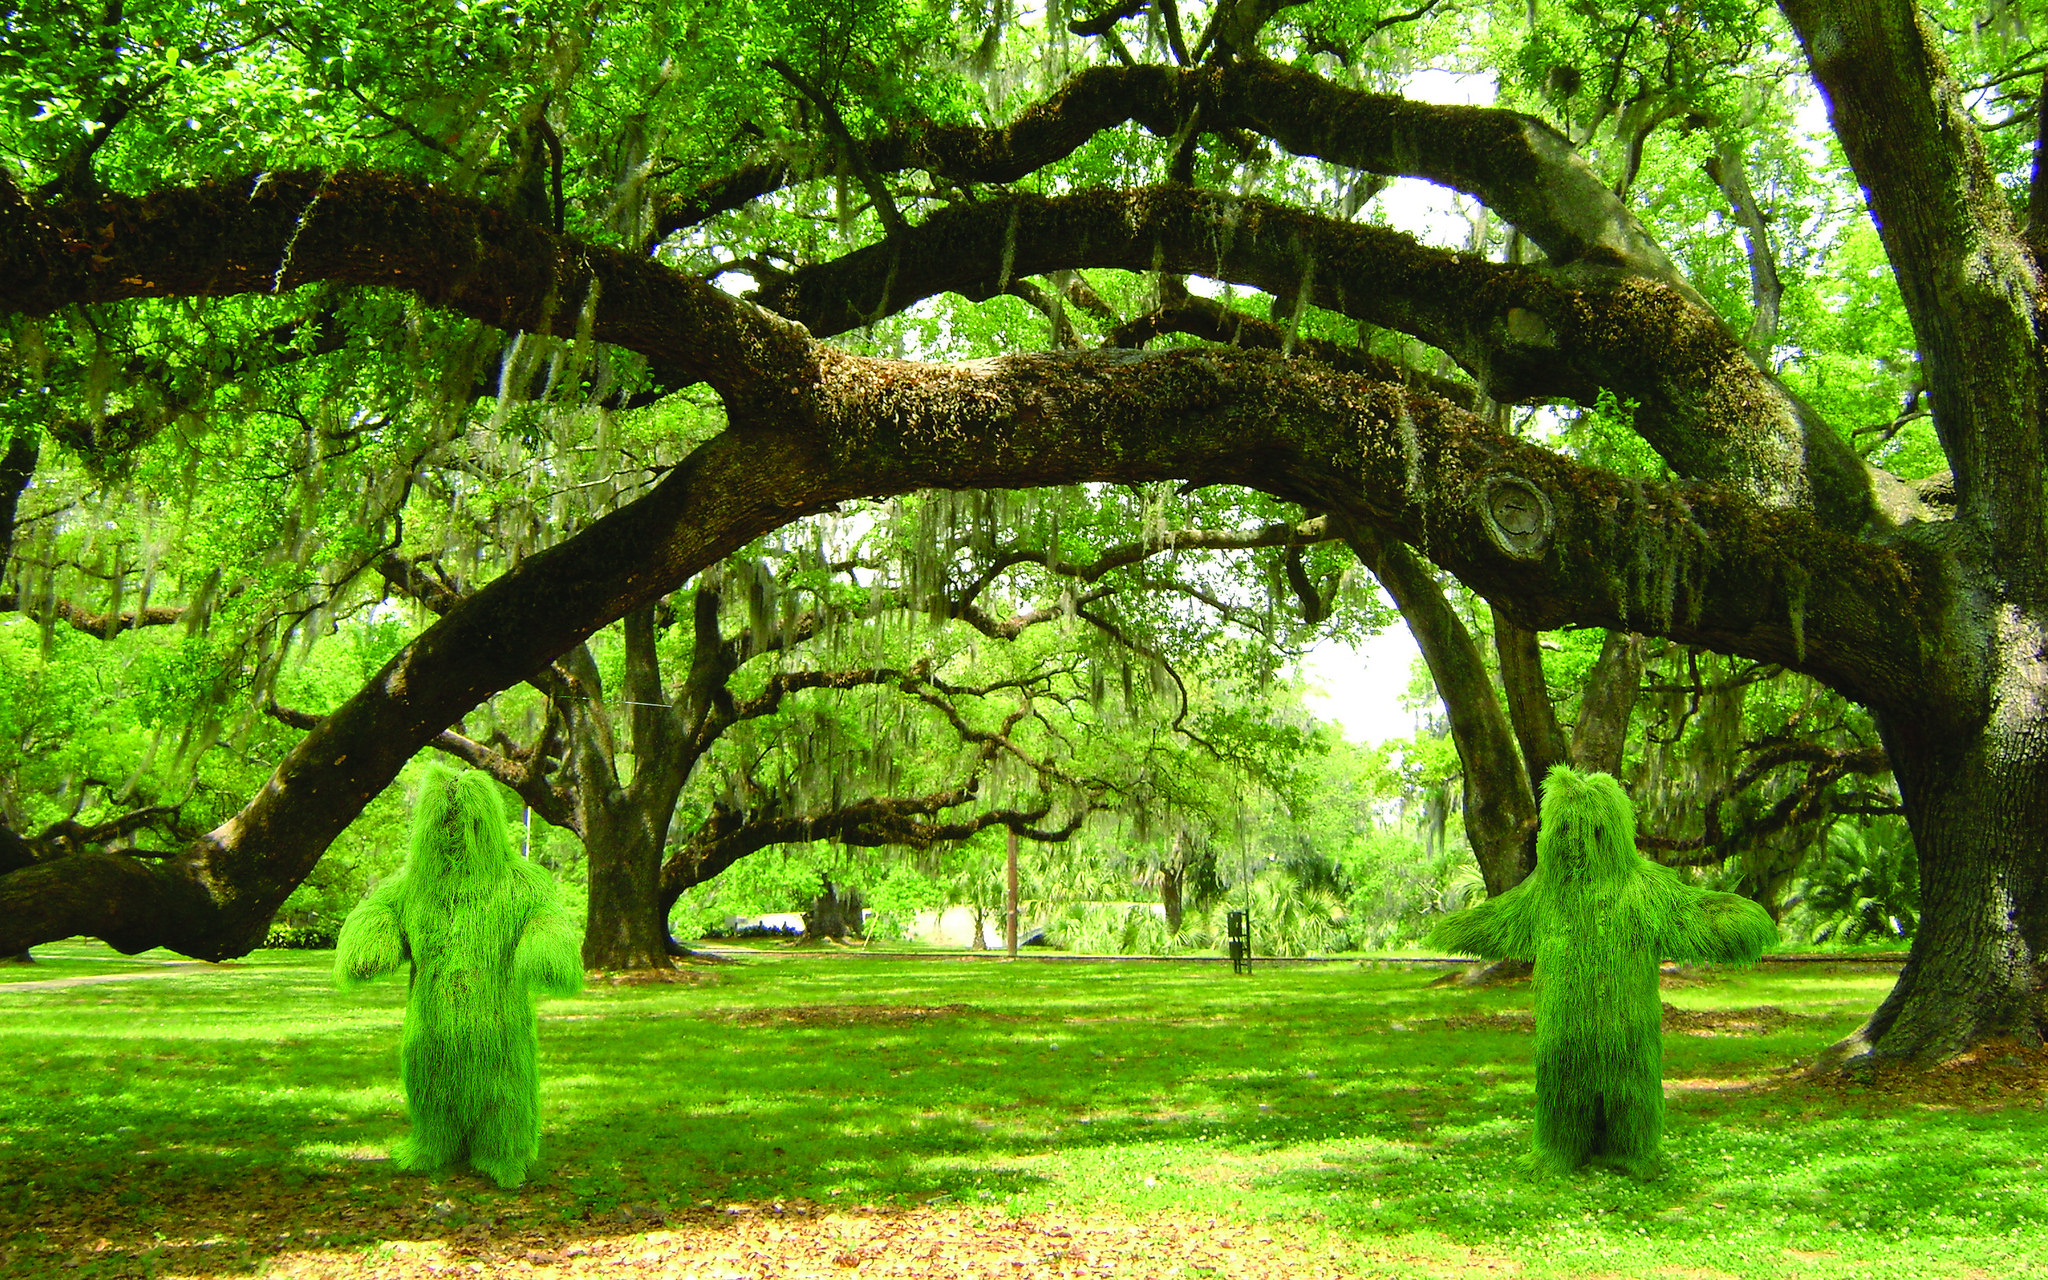 Figures made from grass appear to grow from the ground beneath an old, arched, tree branch.